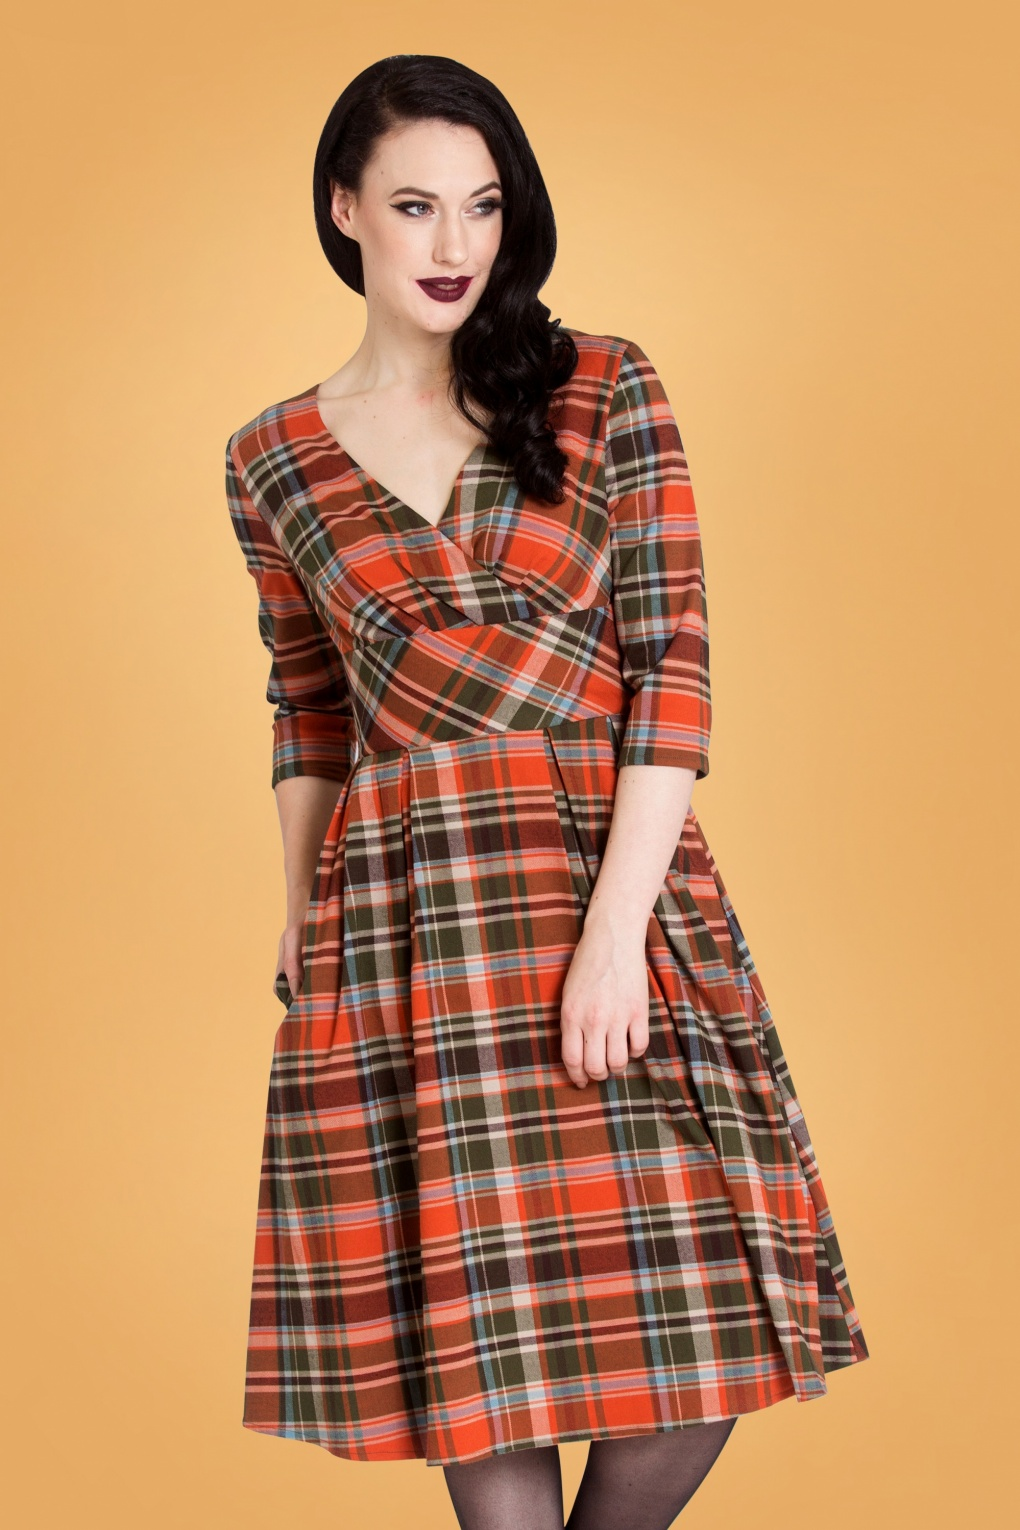 Vintage Christmas Gift Ideas for Women 50s Oktober Tartan Swing Dress in Orange £67.67 AT vintagedancer.com